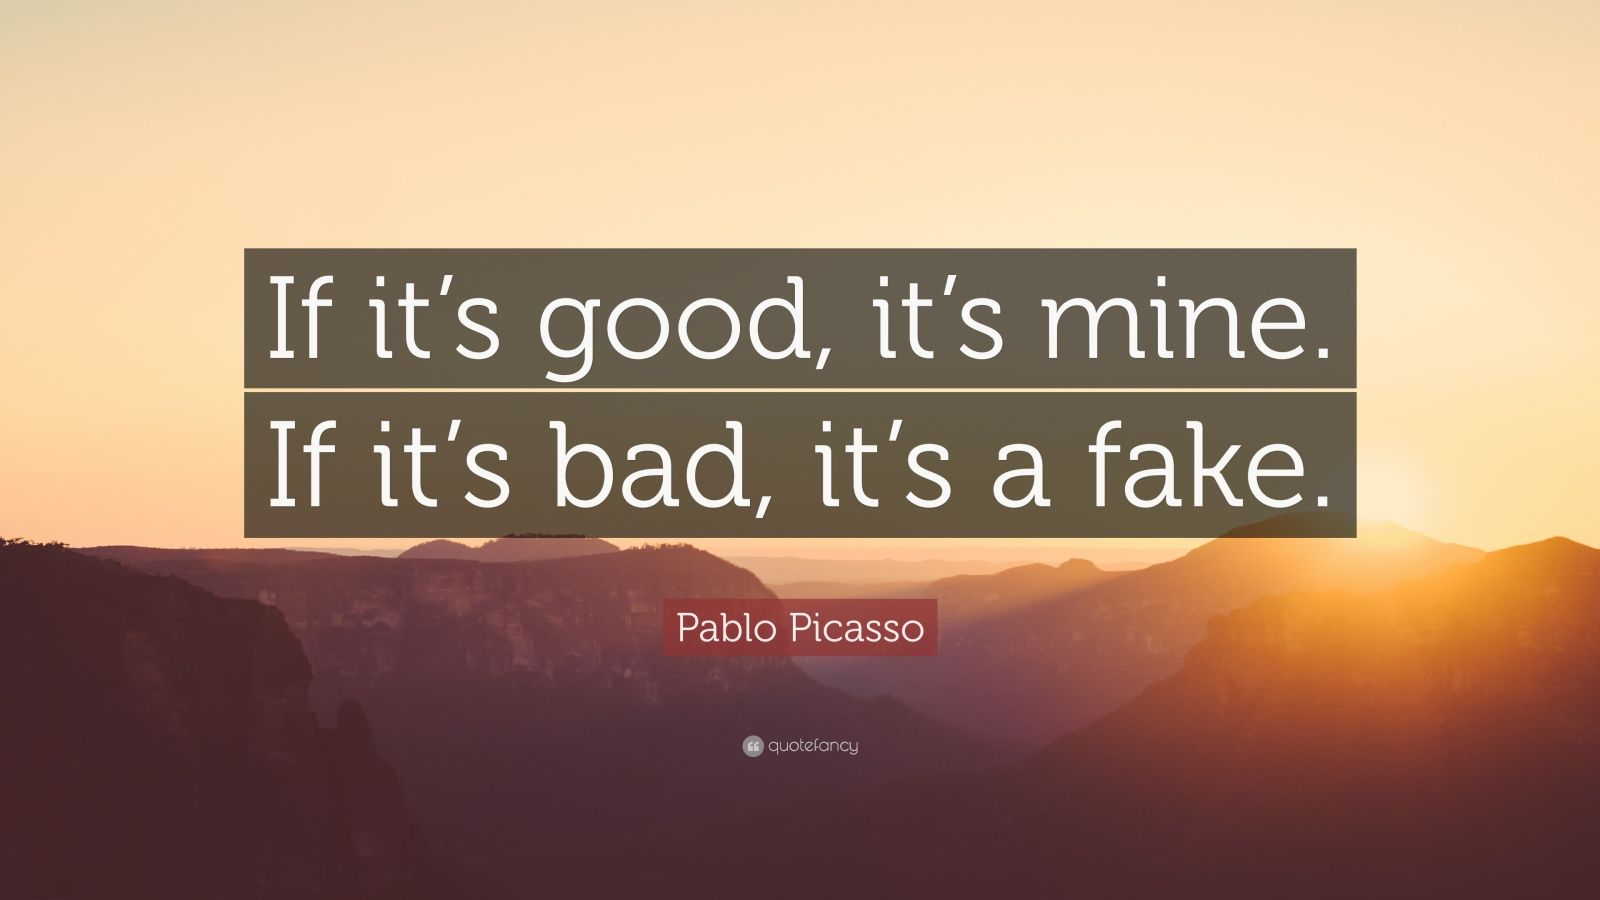 """Pablo Picasso Quote: """"If it's good, it's mine. If it's bad, it's a fake."""""""